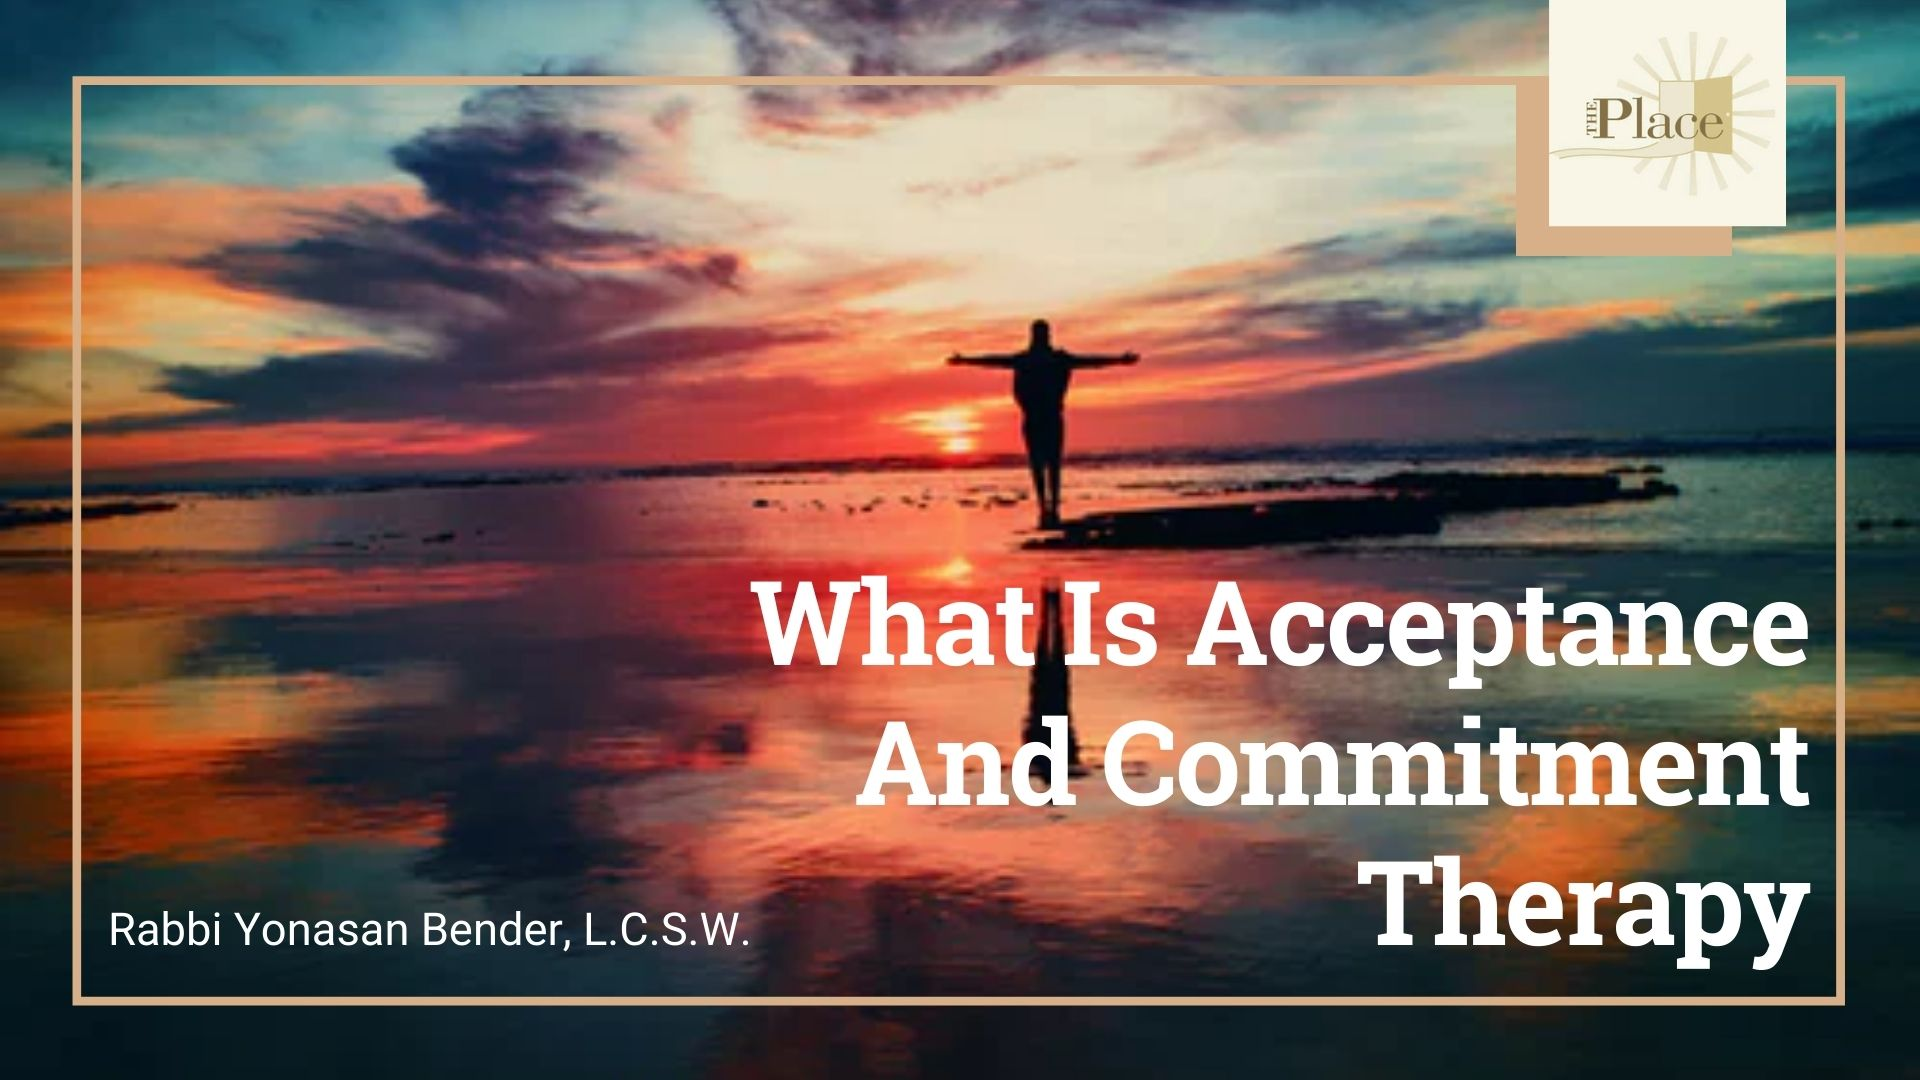 ACT Effectively: Introduction to Acceptance and Commitment Therapy